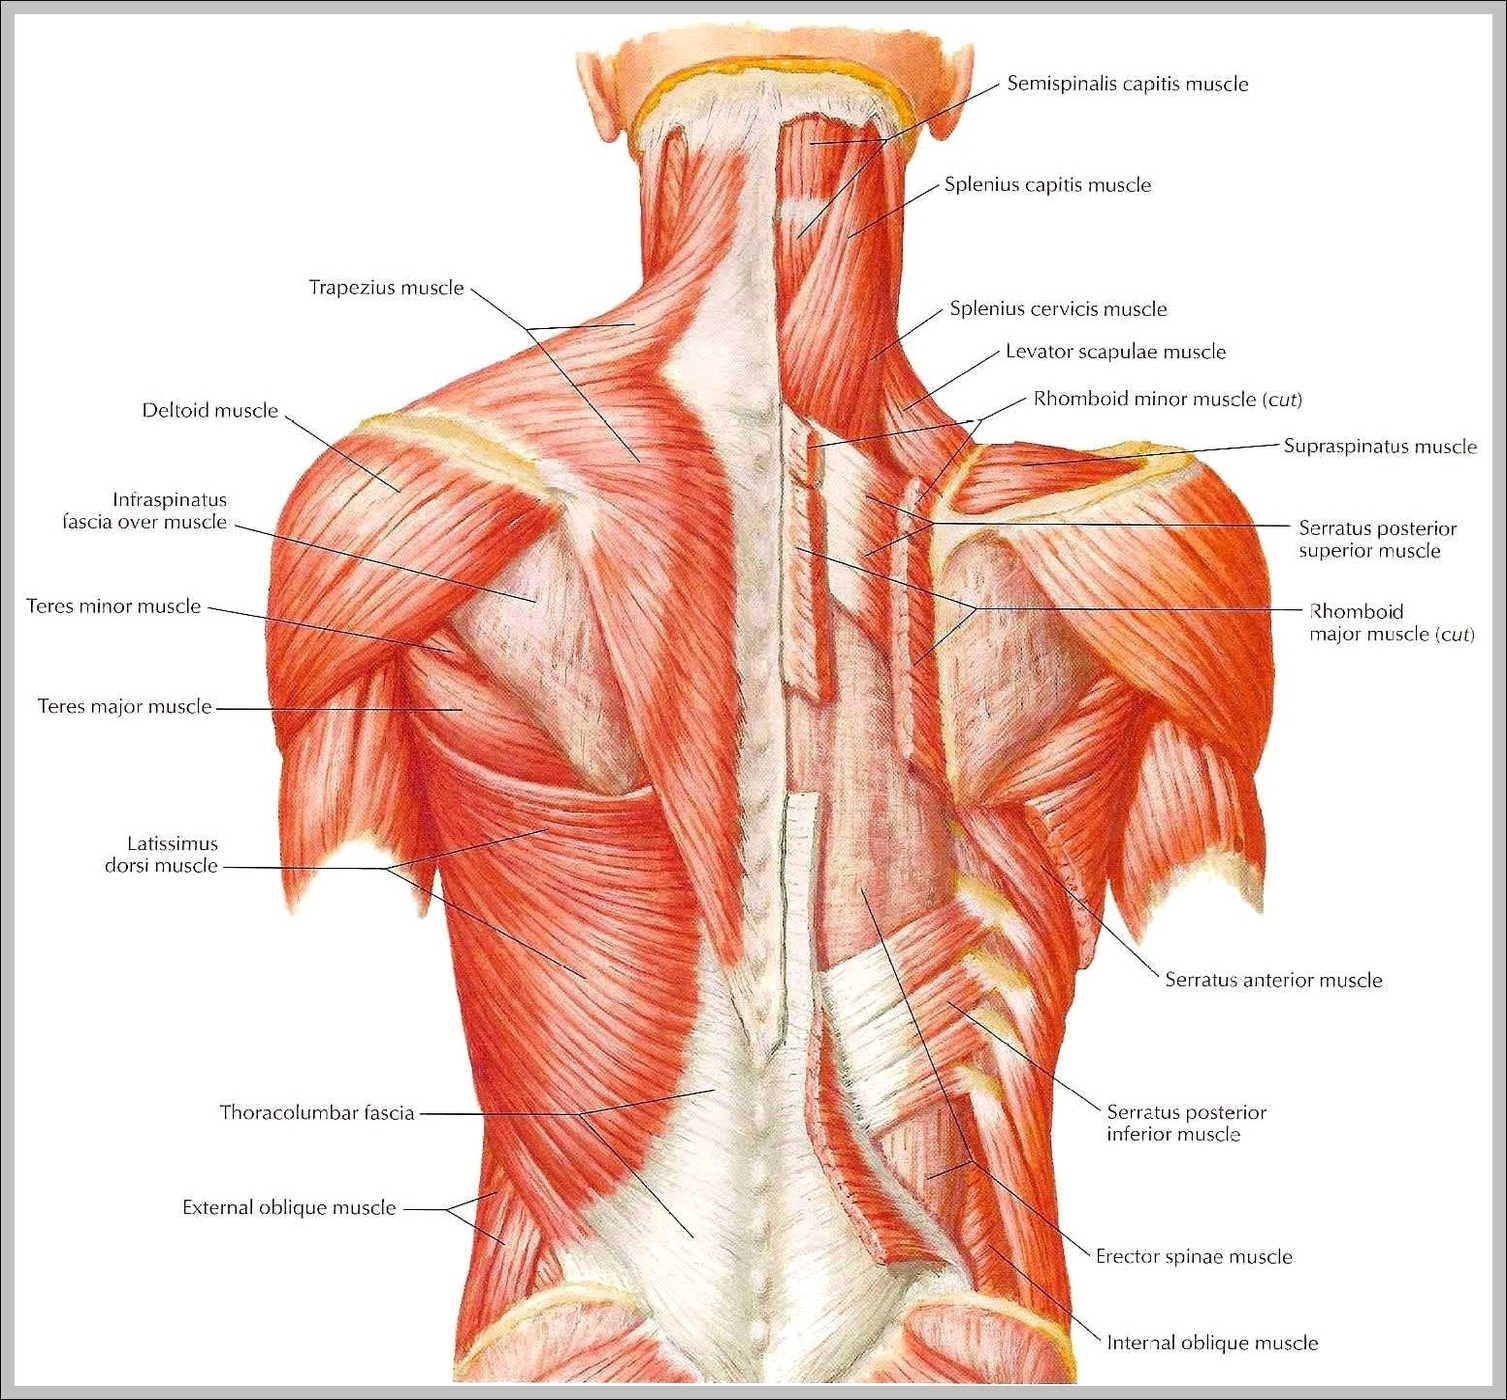 Picture of muscles in back graph diagram picture of muscles in back ccuart